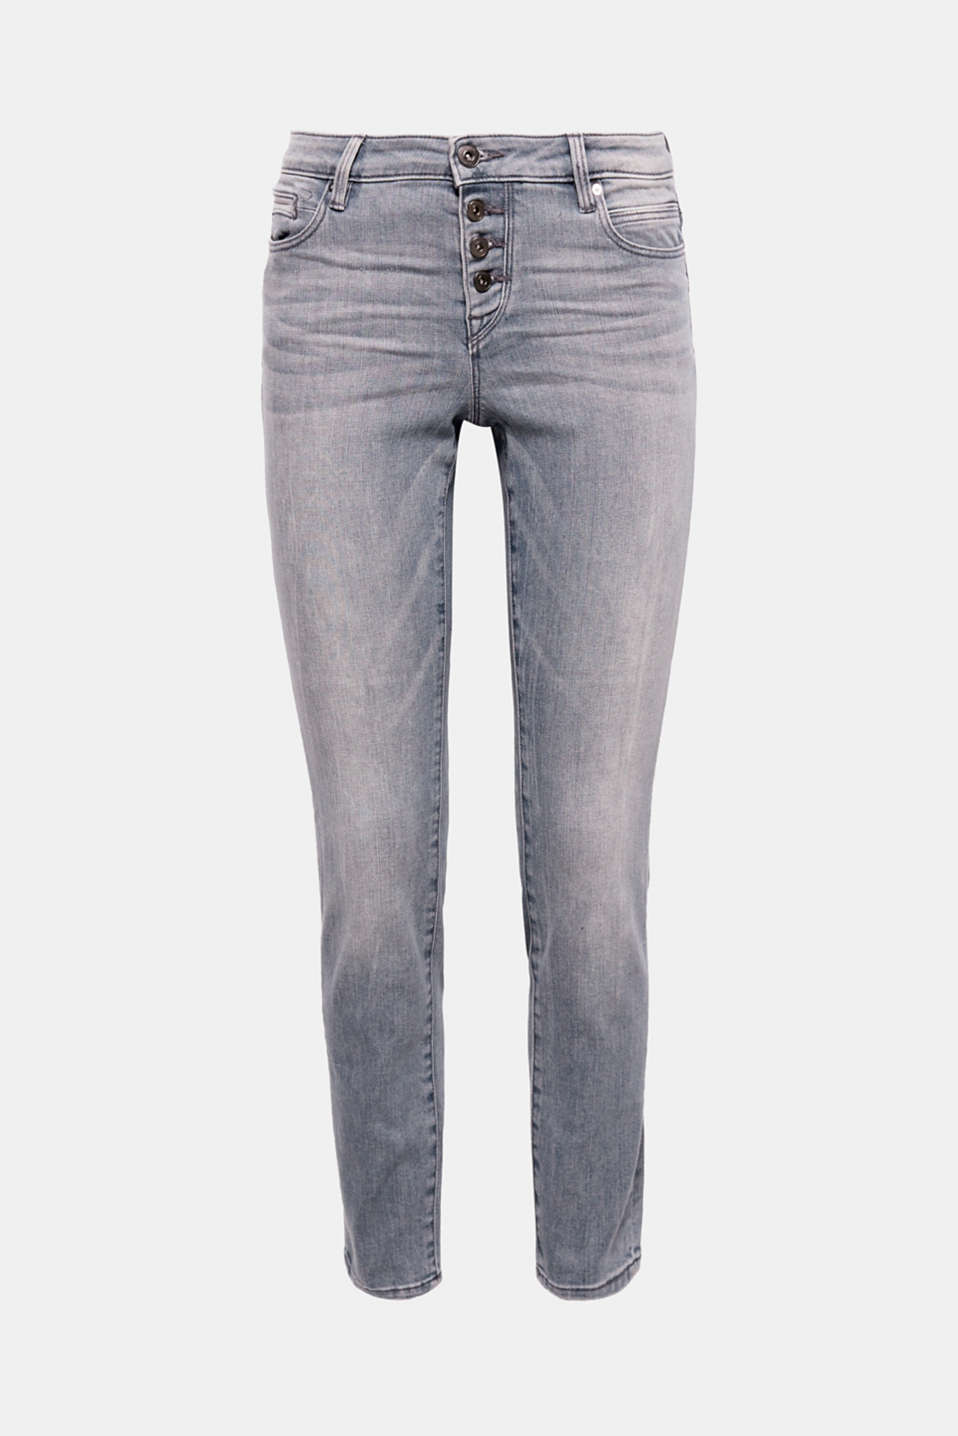 The grey trendy garment wash with washed-out effects and a visible button placket give these jeans their cool, casual look.